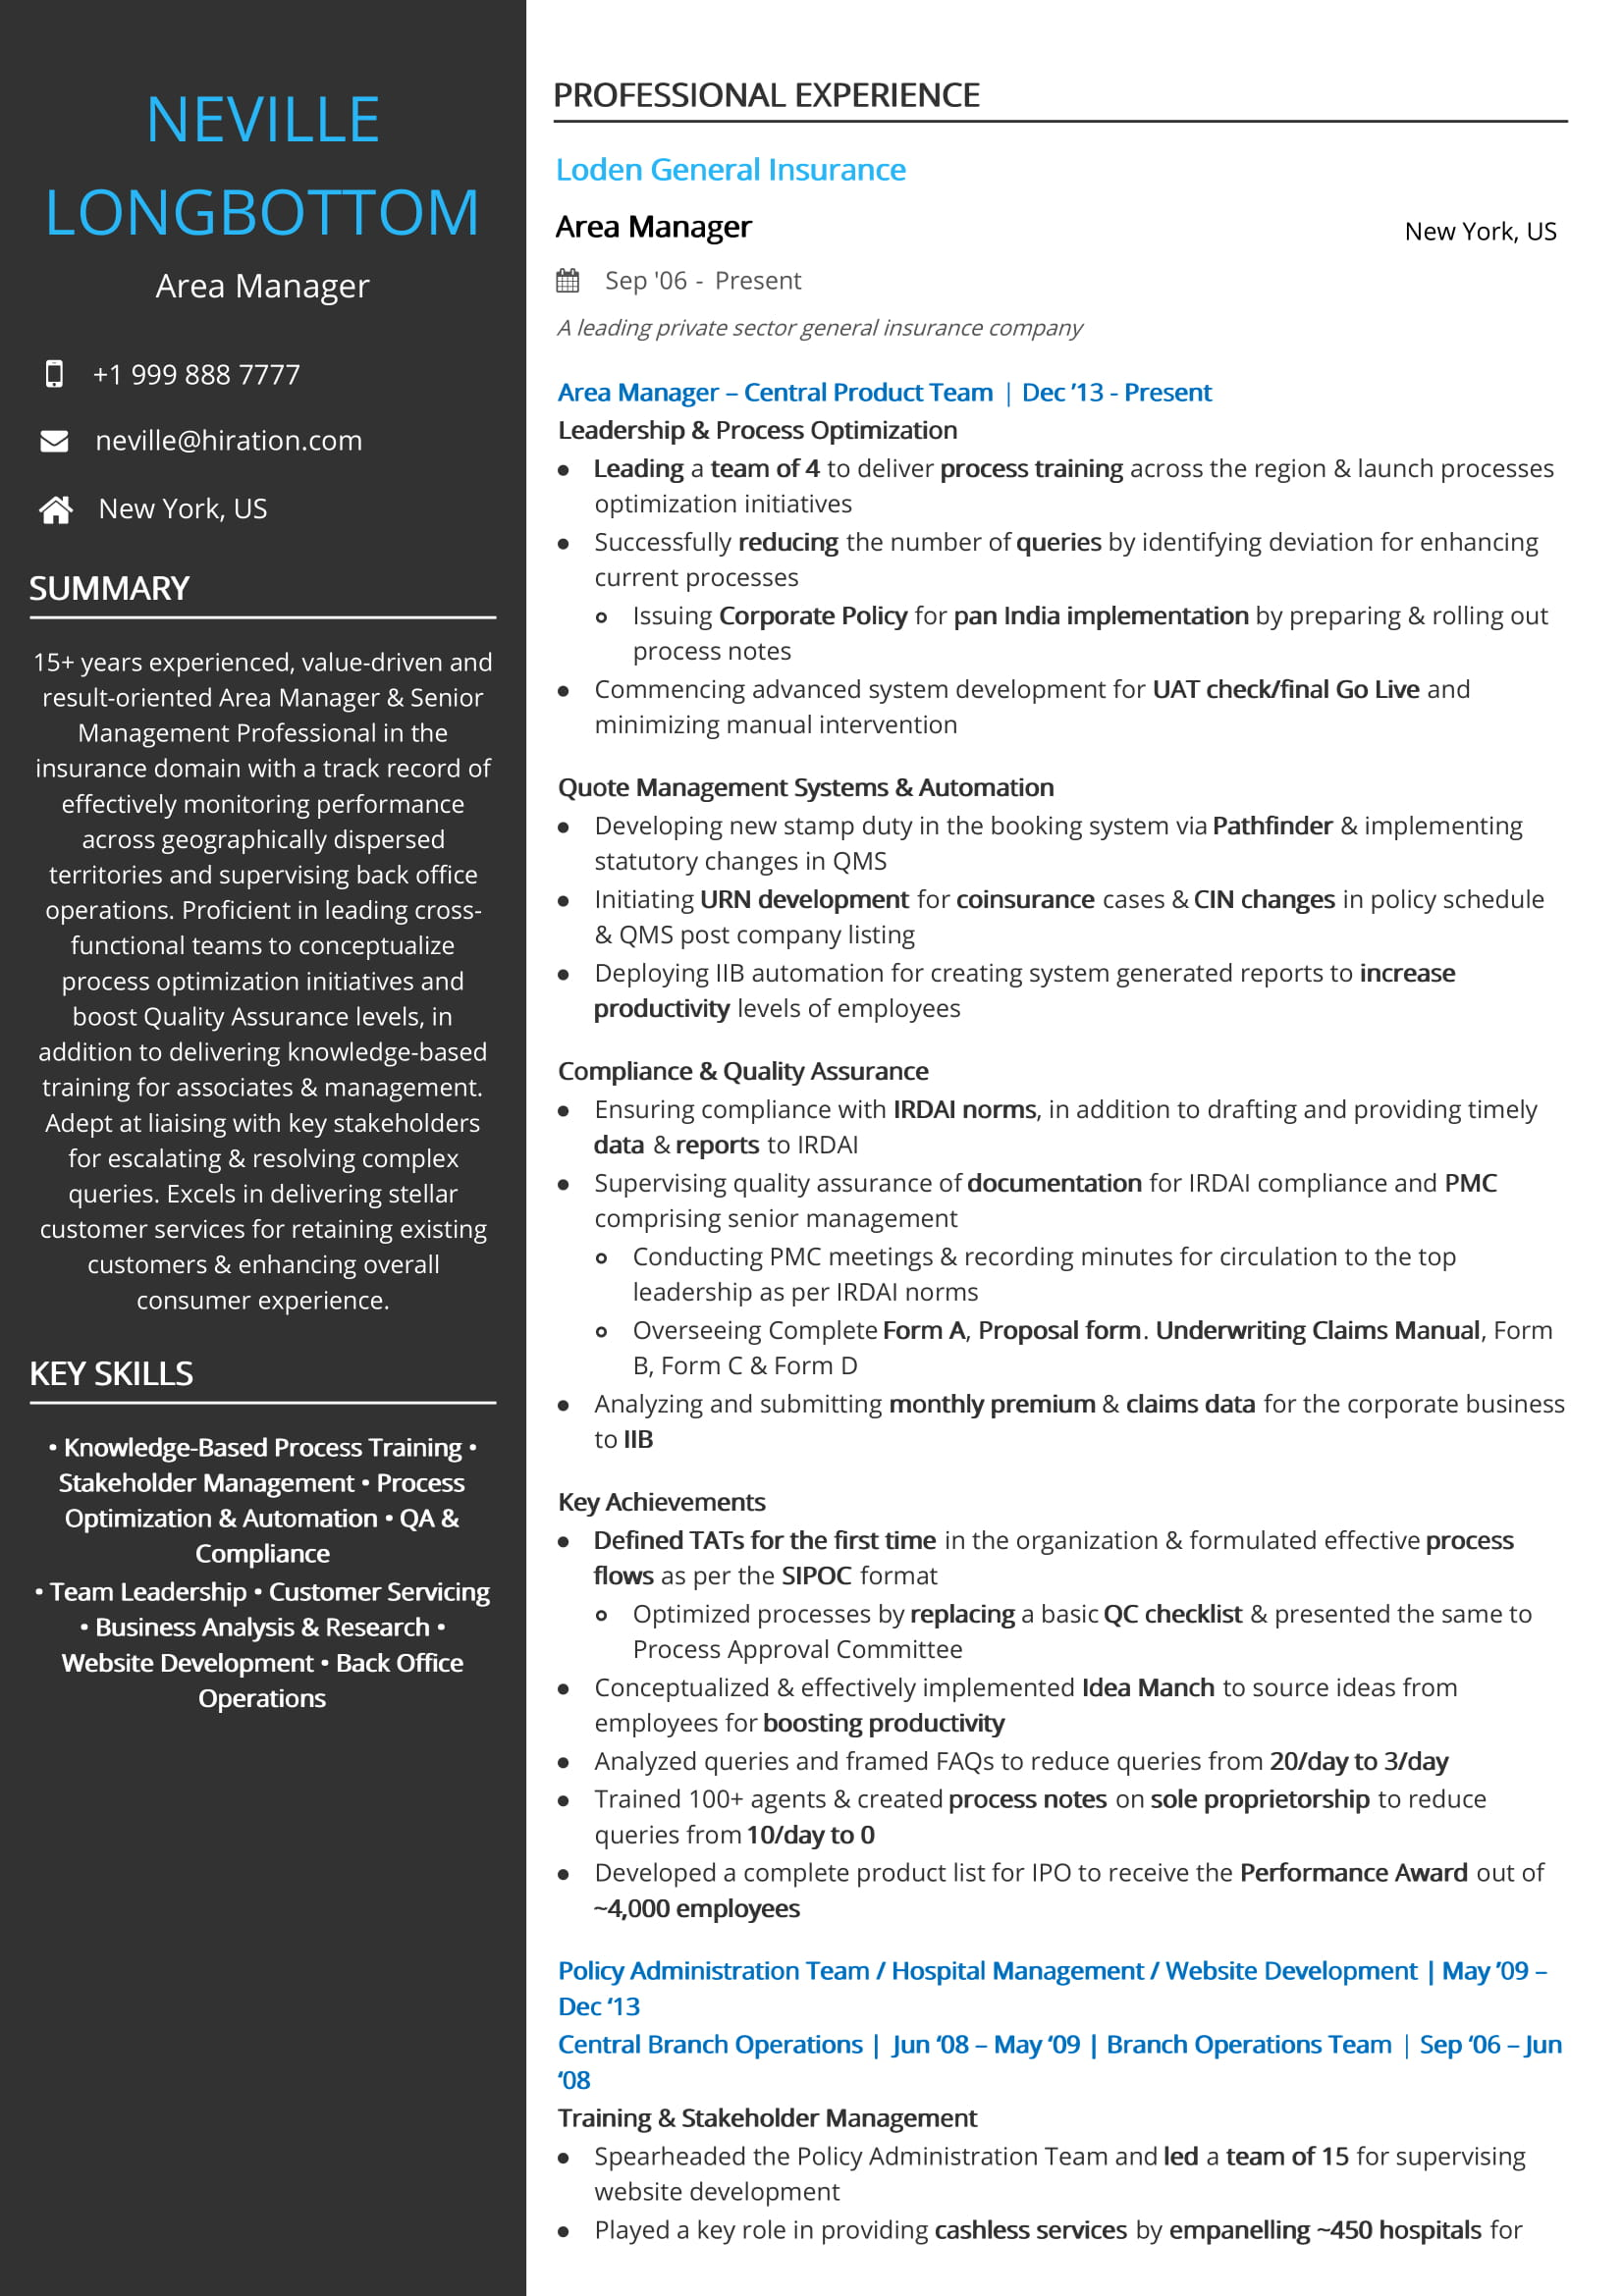 Area Manager Insurance Resume Sample By Hiration